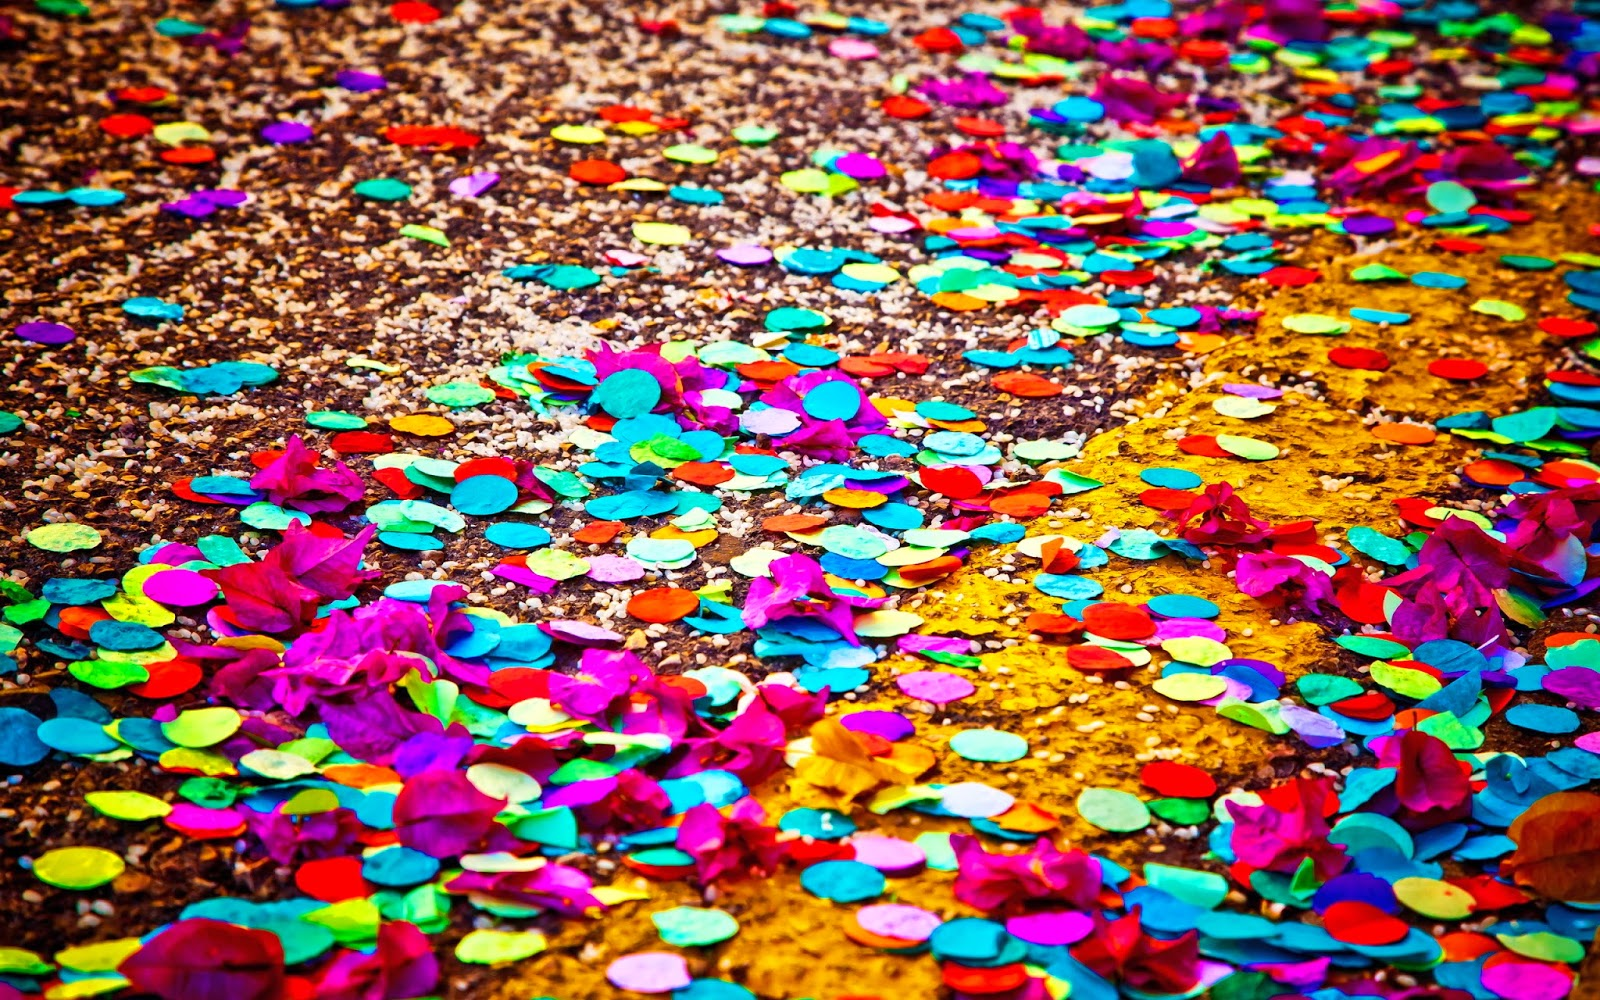 http://sciencelakes.com/ct/8865553-colored-confetti.html